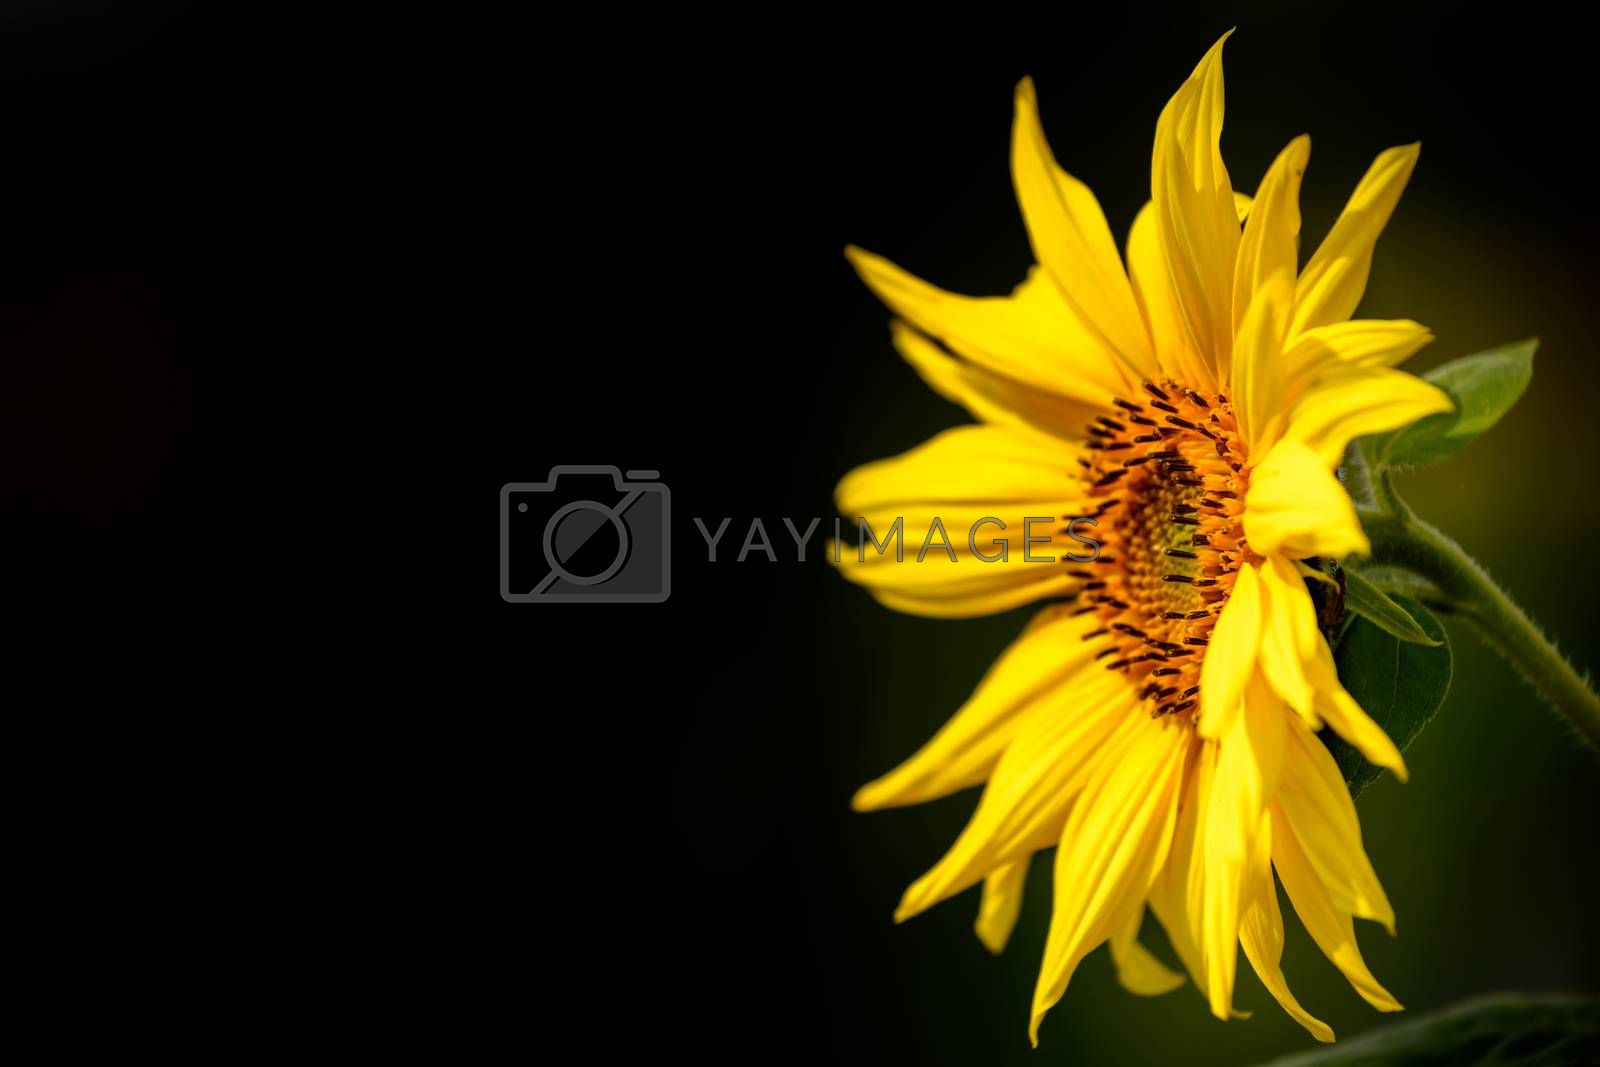 Yellow sunflower isolated on a dark background